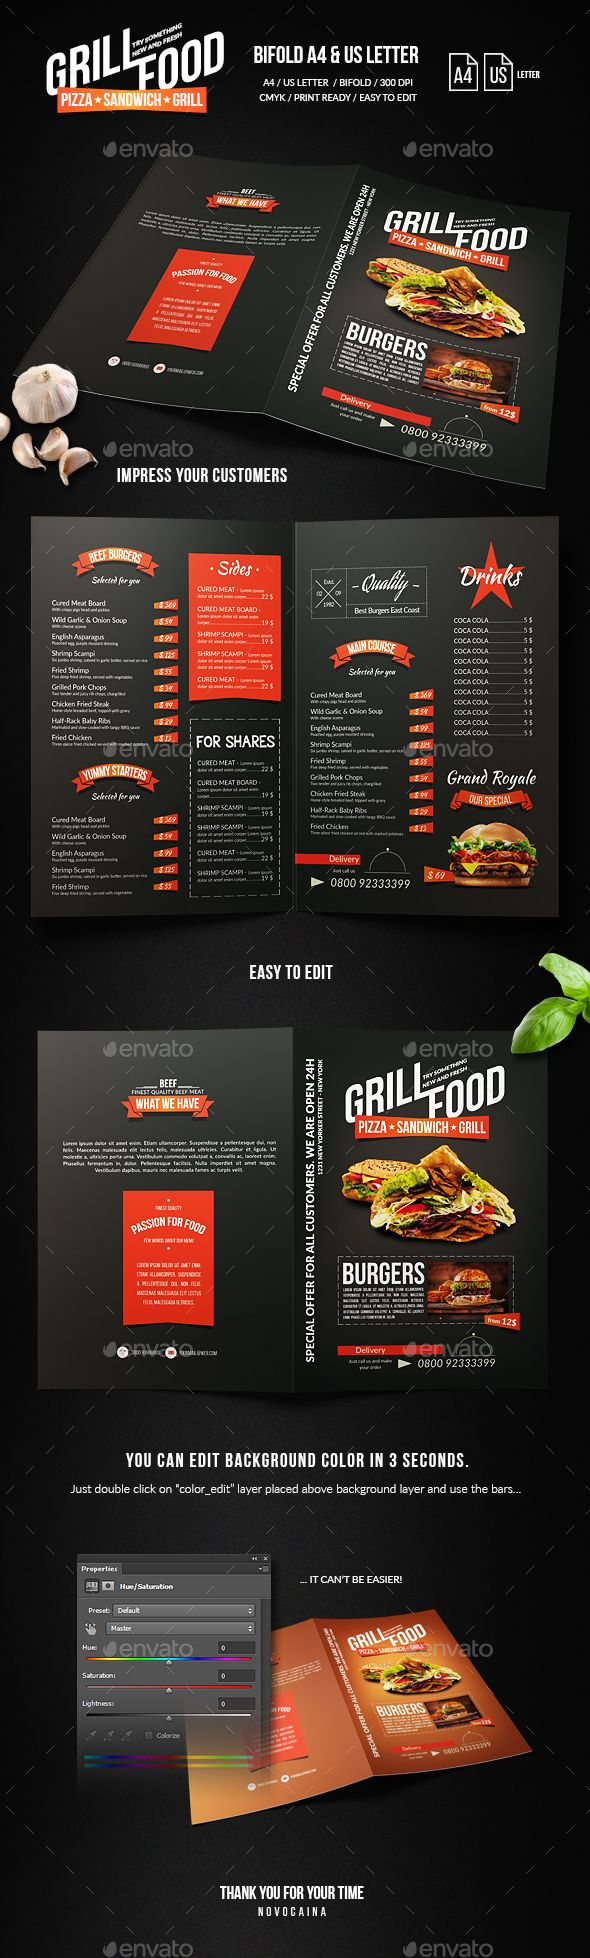 grill bbq bifold food menu template psd best food menu templates